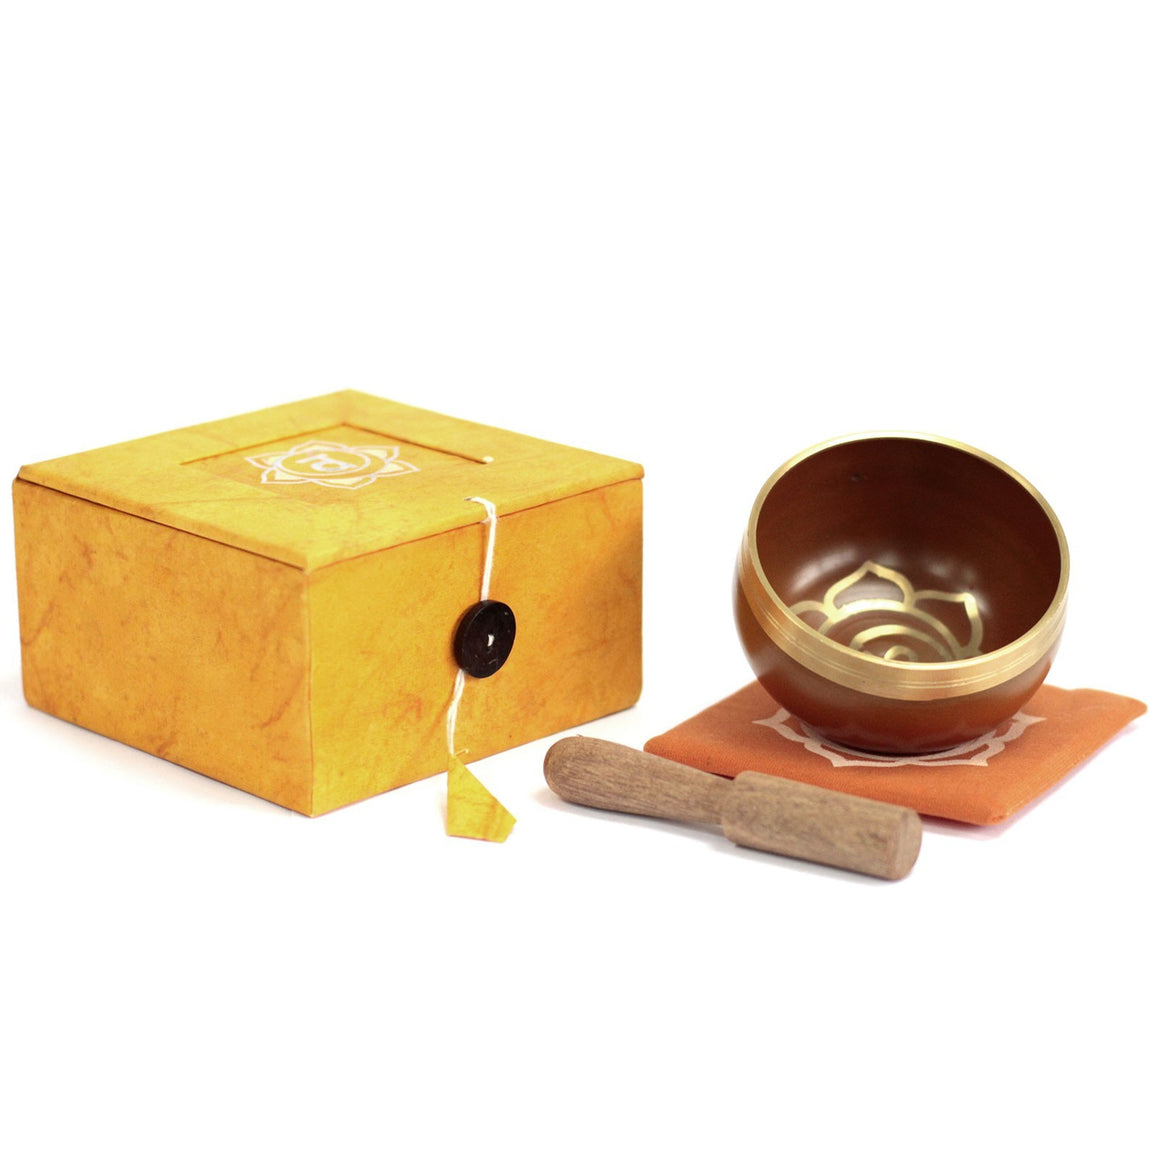 Tibetan Singing Bowl Set - Sacral Chakra